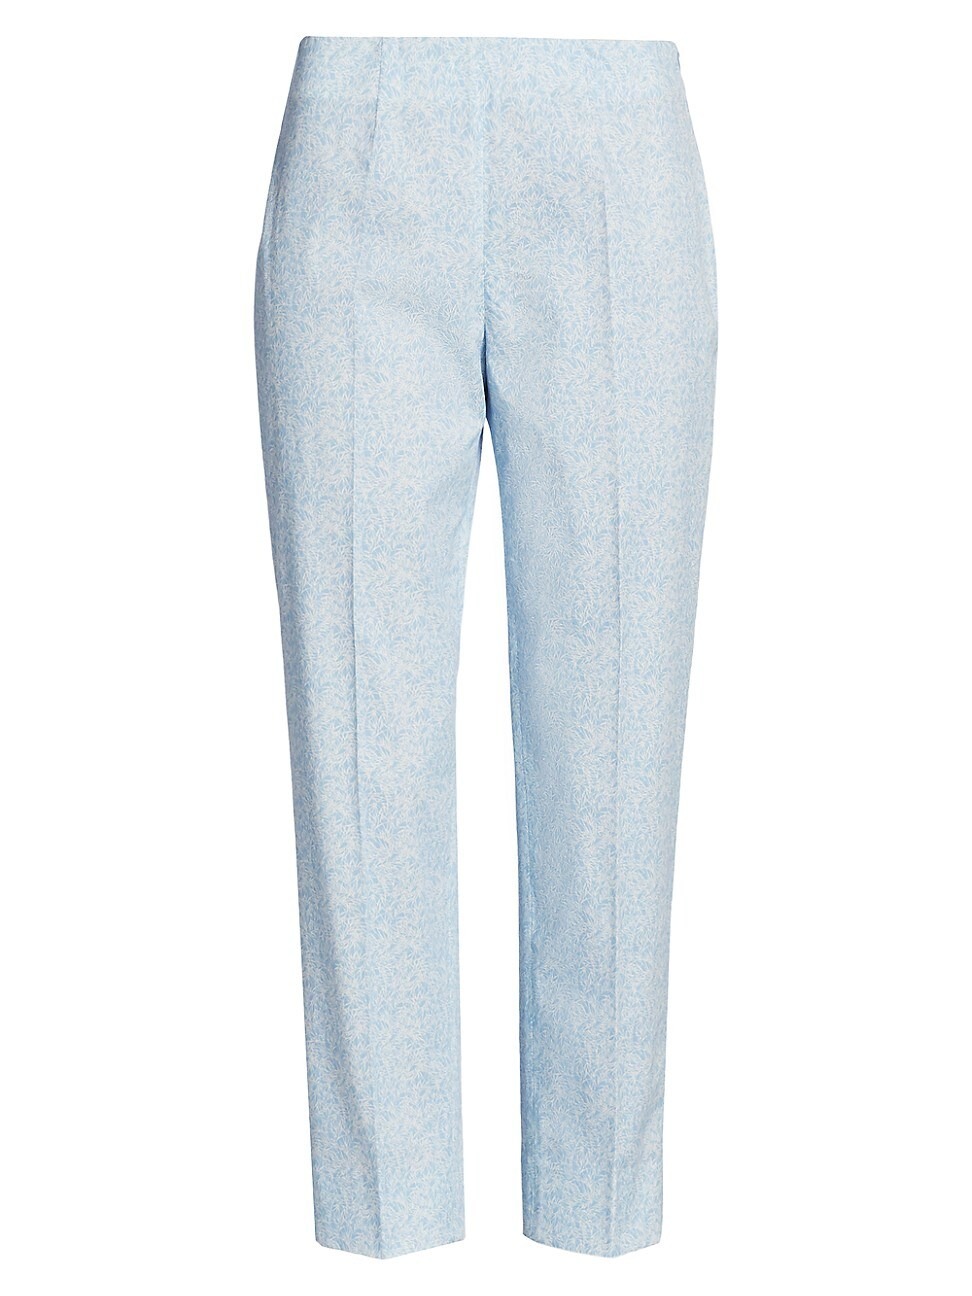 Piazza Sempione Women's Audrey Micro Pattern Stretch Trousers In Sky Blue White